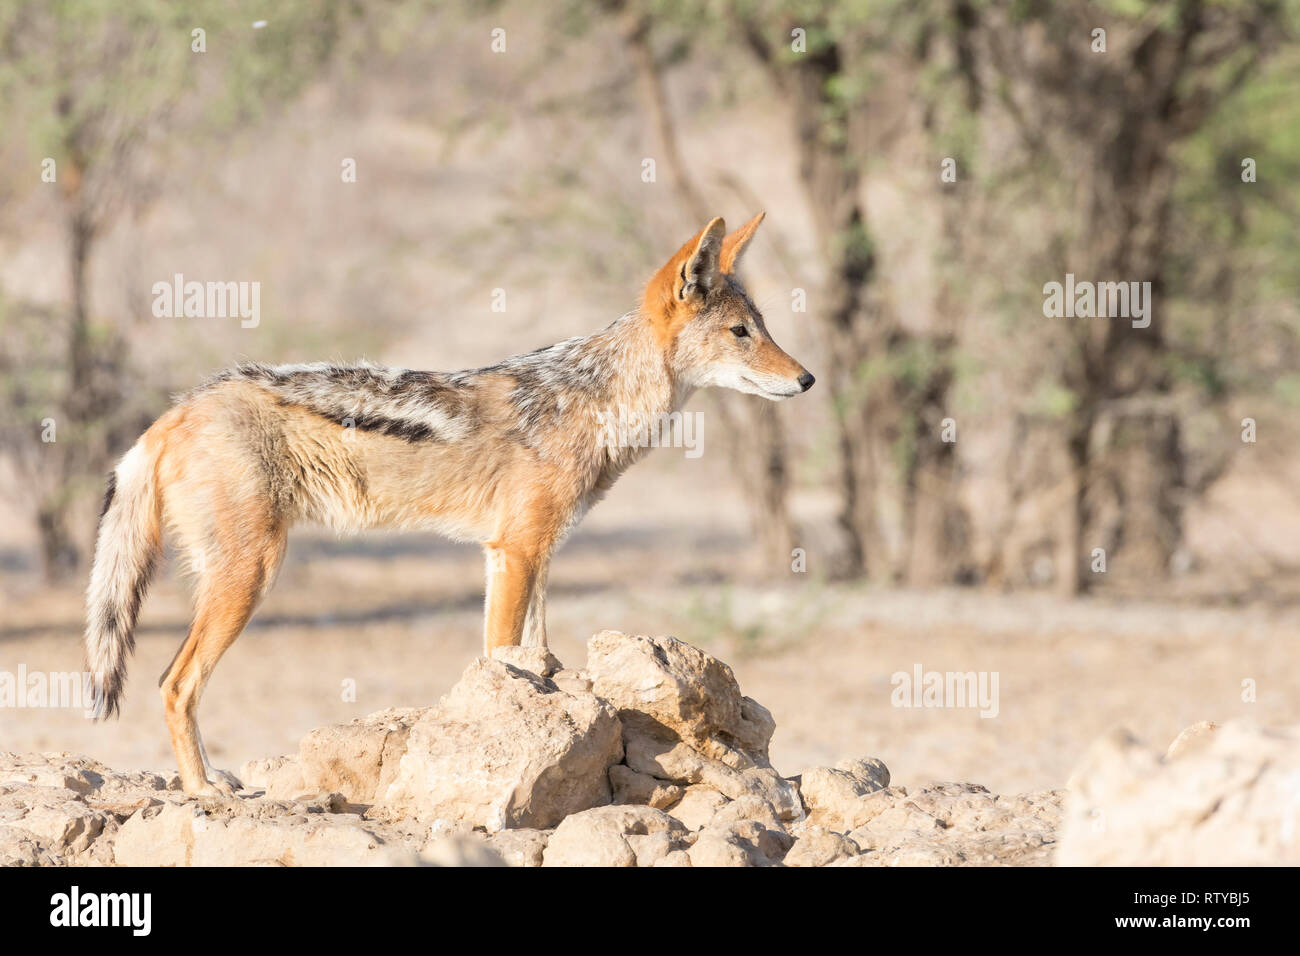 Black-backed Jackal (Canis mesomelas) standing on rock, Kgalagadi Transfrontier park, Northern Cape, Kalahari, South Africa, side view, alert, early m - Stock Image